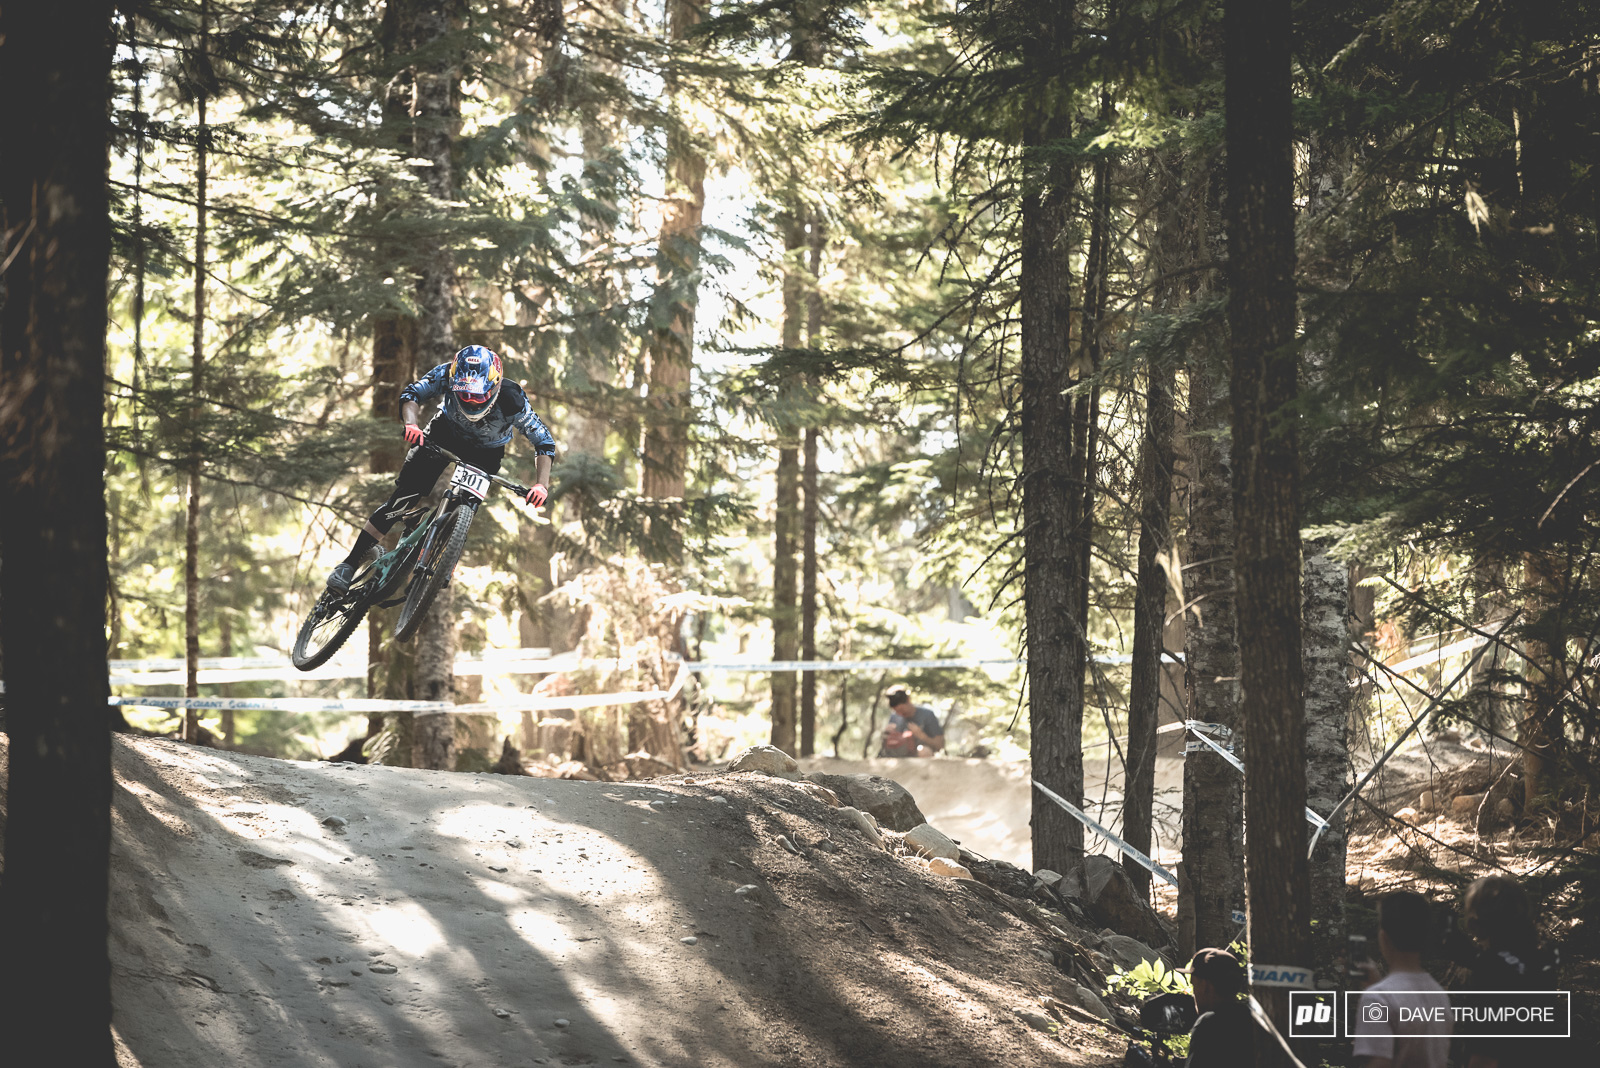 Jill Kintner keeps it low through the lower jumps on her trail bike.